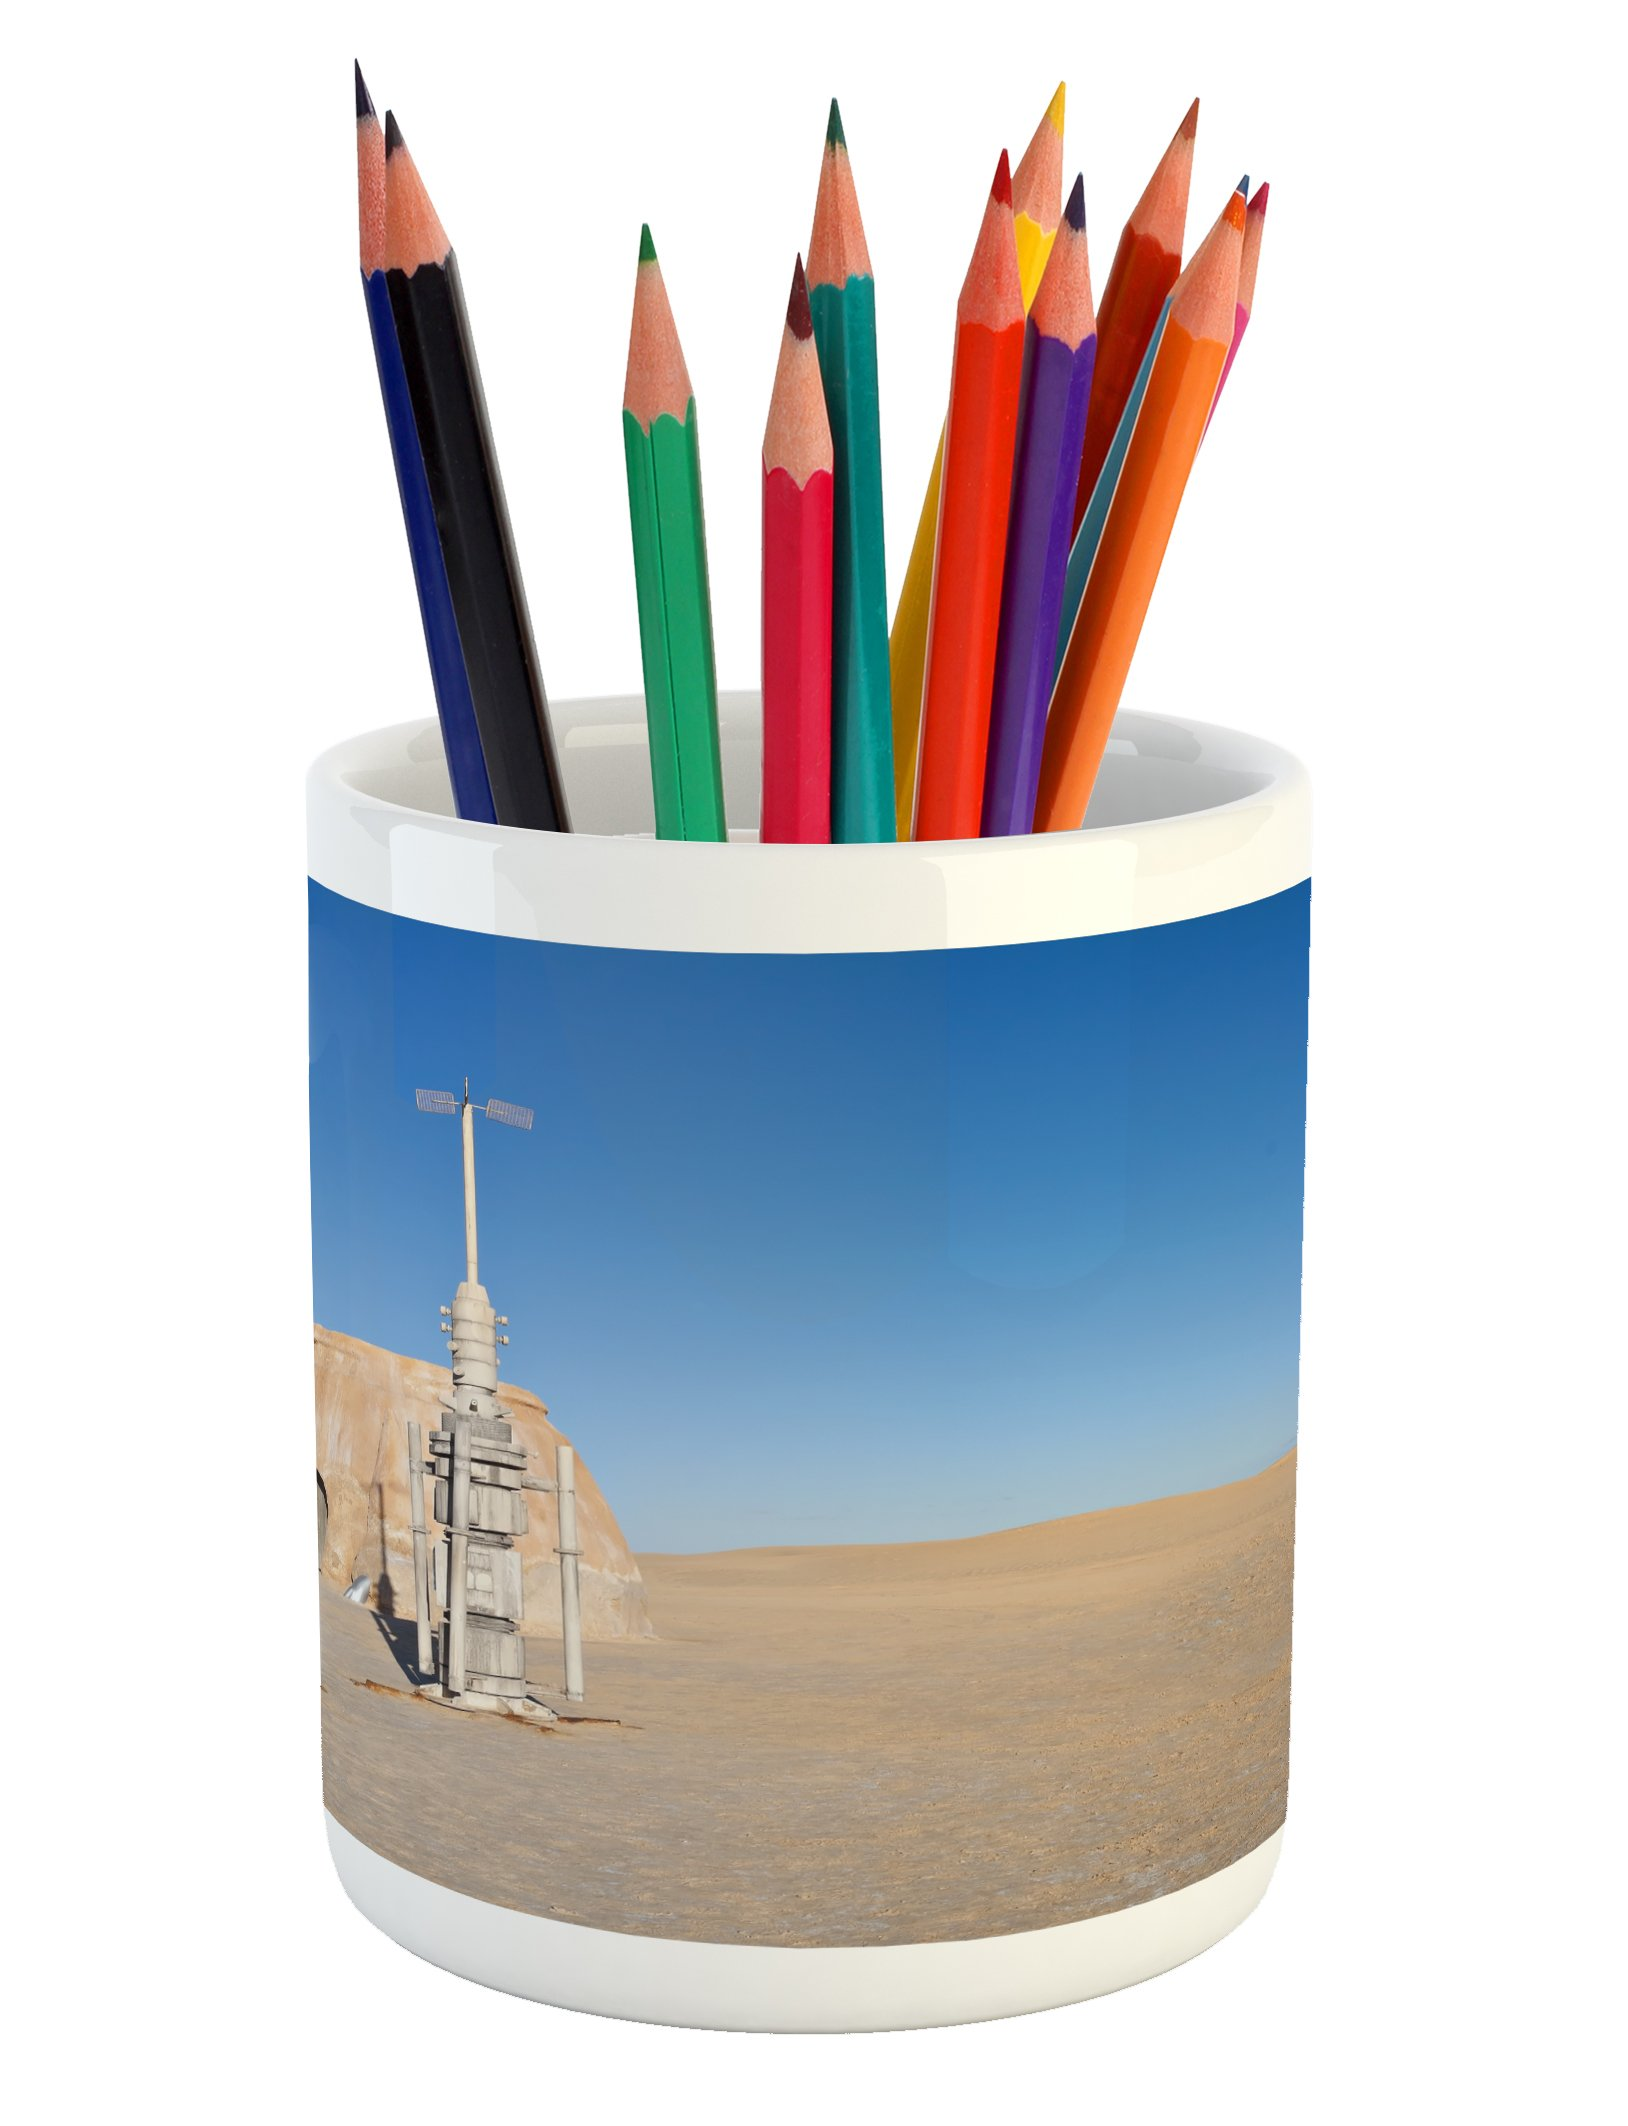 Ambesonne Galaxy Pencil Pen Holder, Illustration of Town of Famous Movie Set on the Planet Fantasy Outer Space Theme, Printed Ceramic Pencil Pen Holder for Desk Office Accessory, Brown Blue